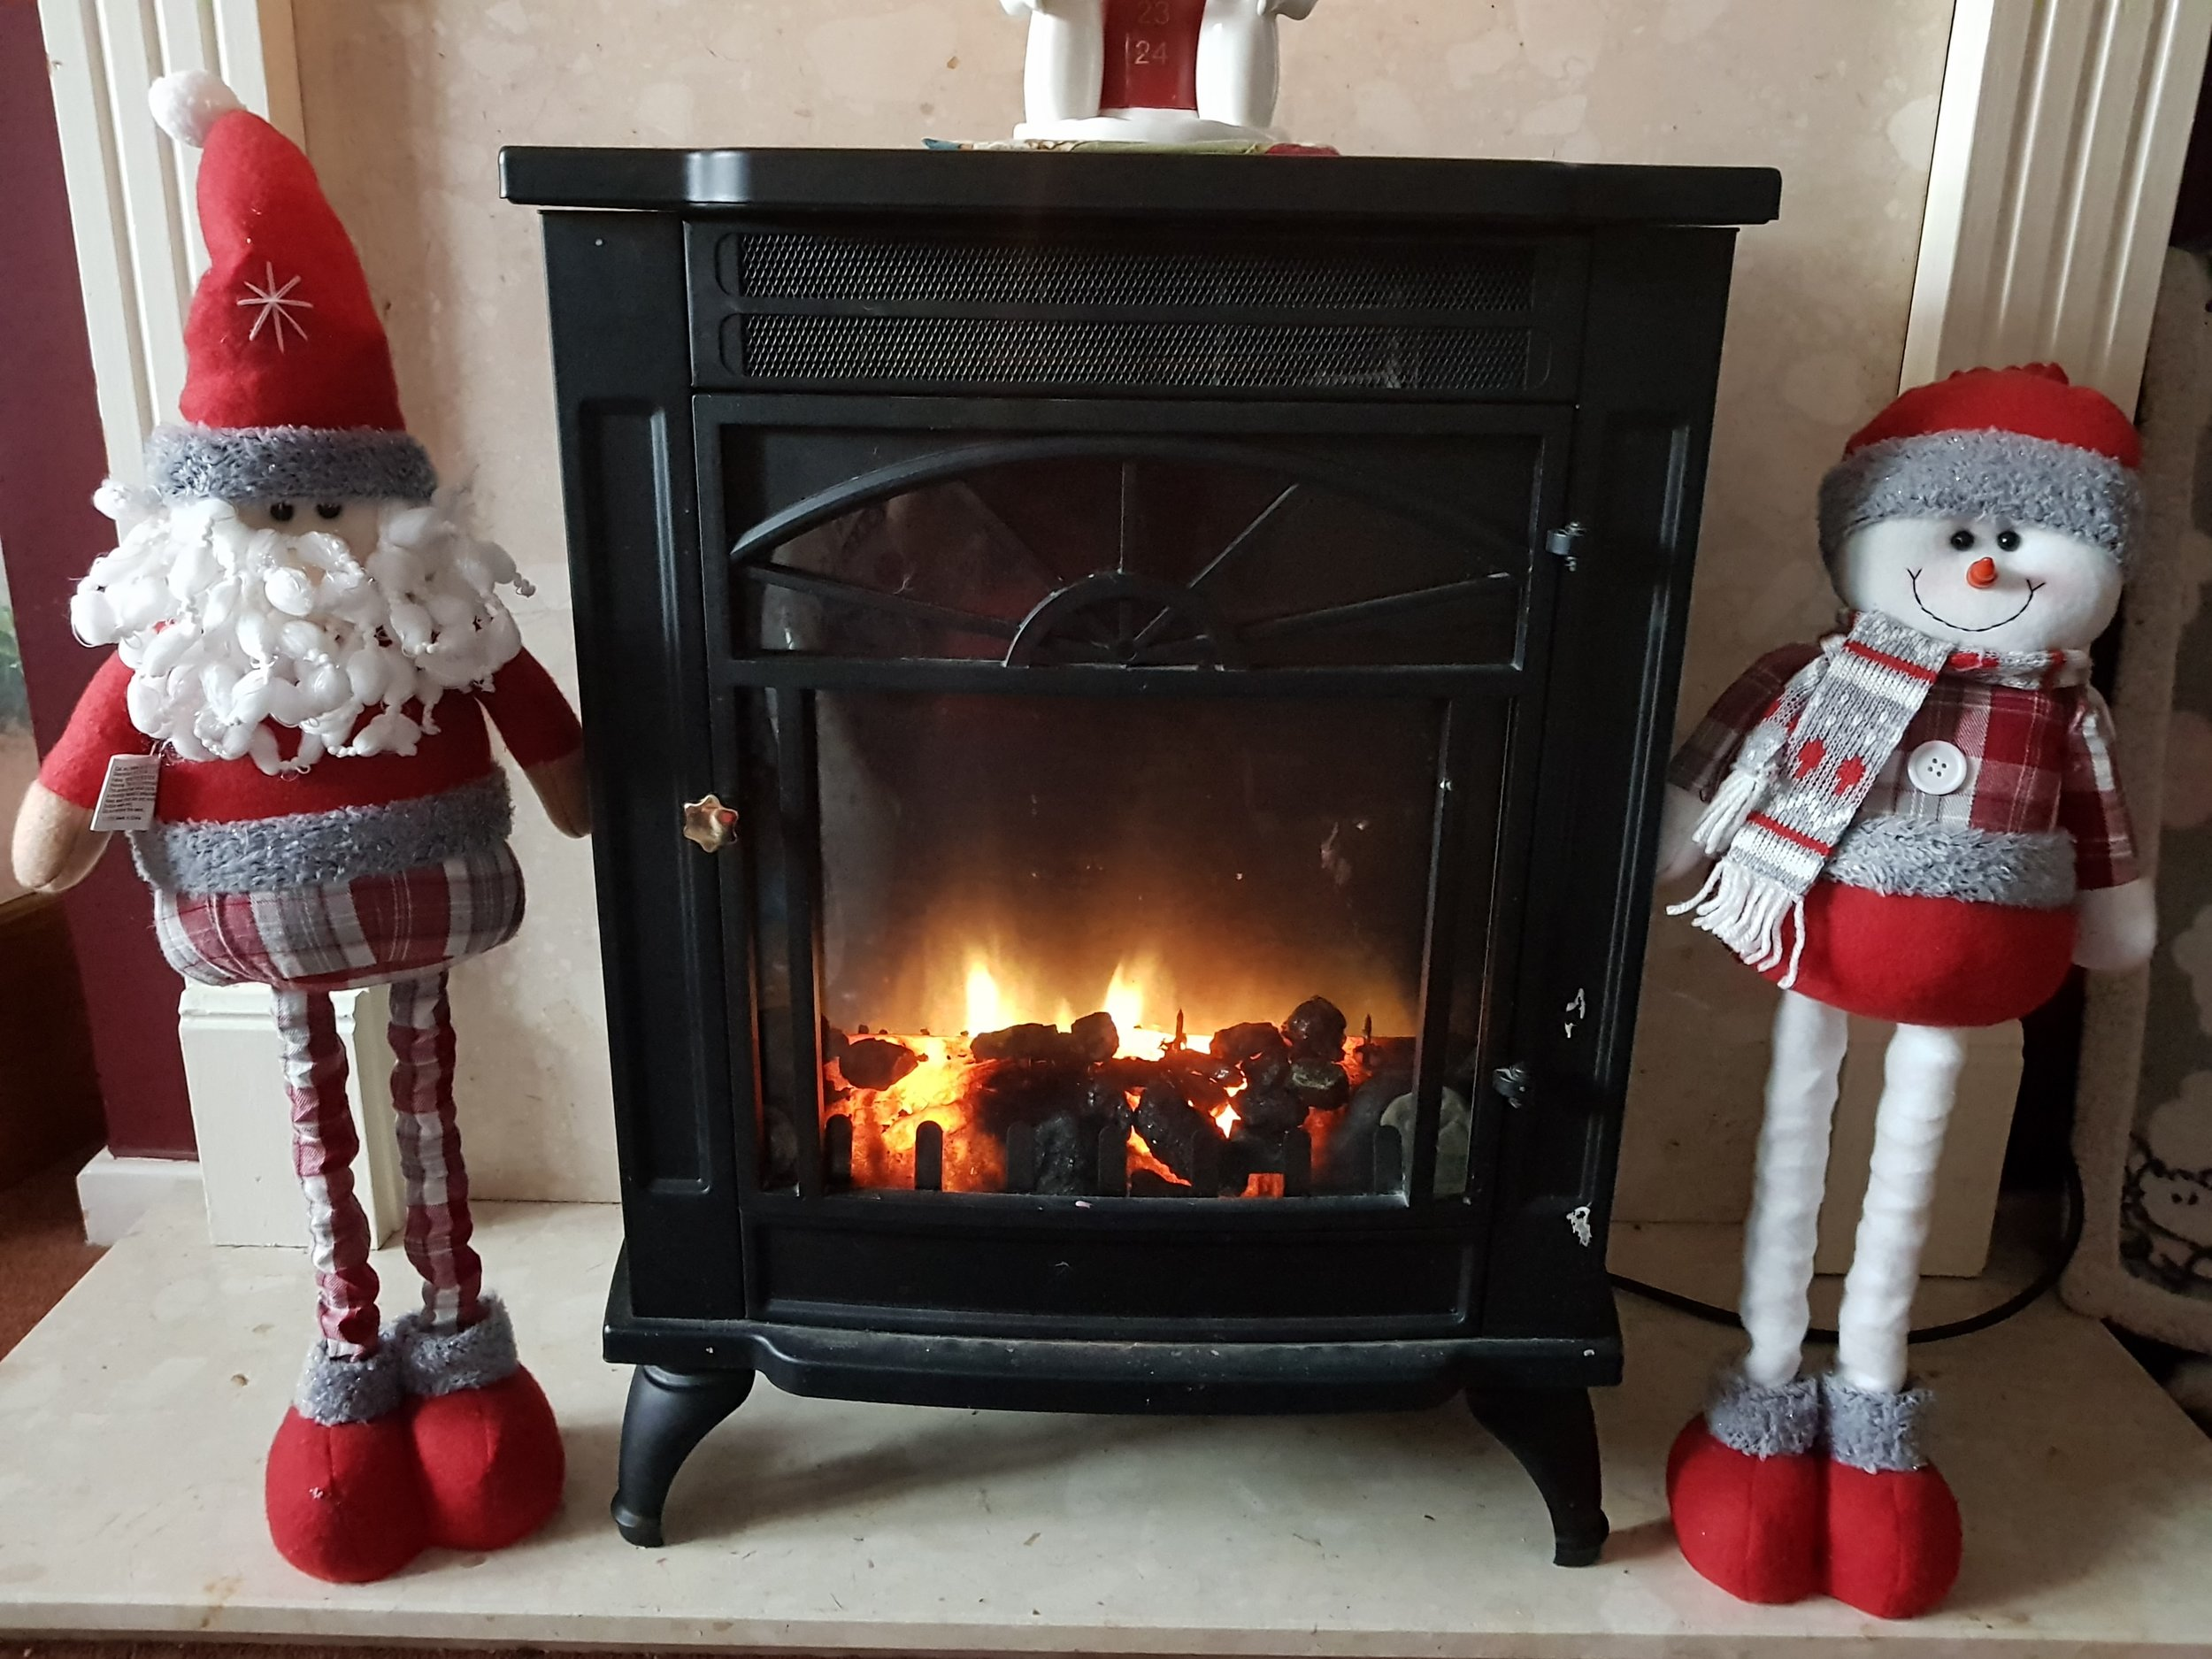 Extendable leg characters and fireplace